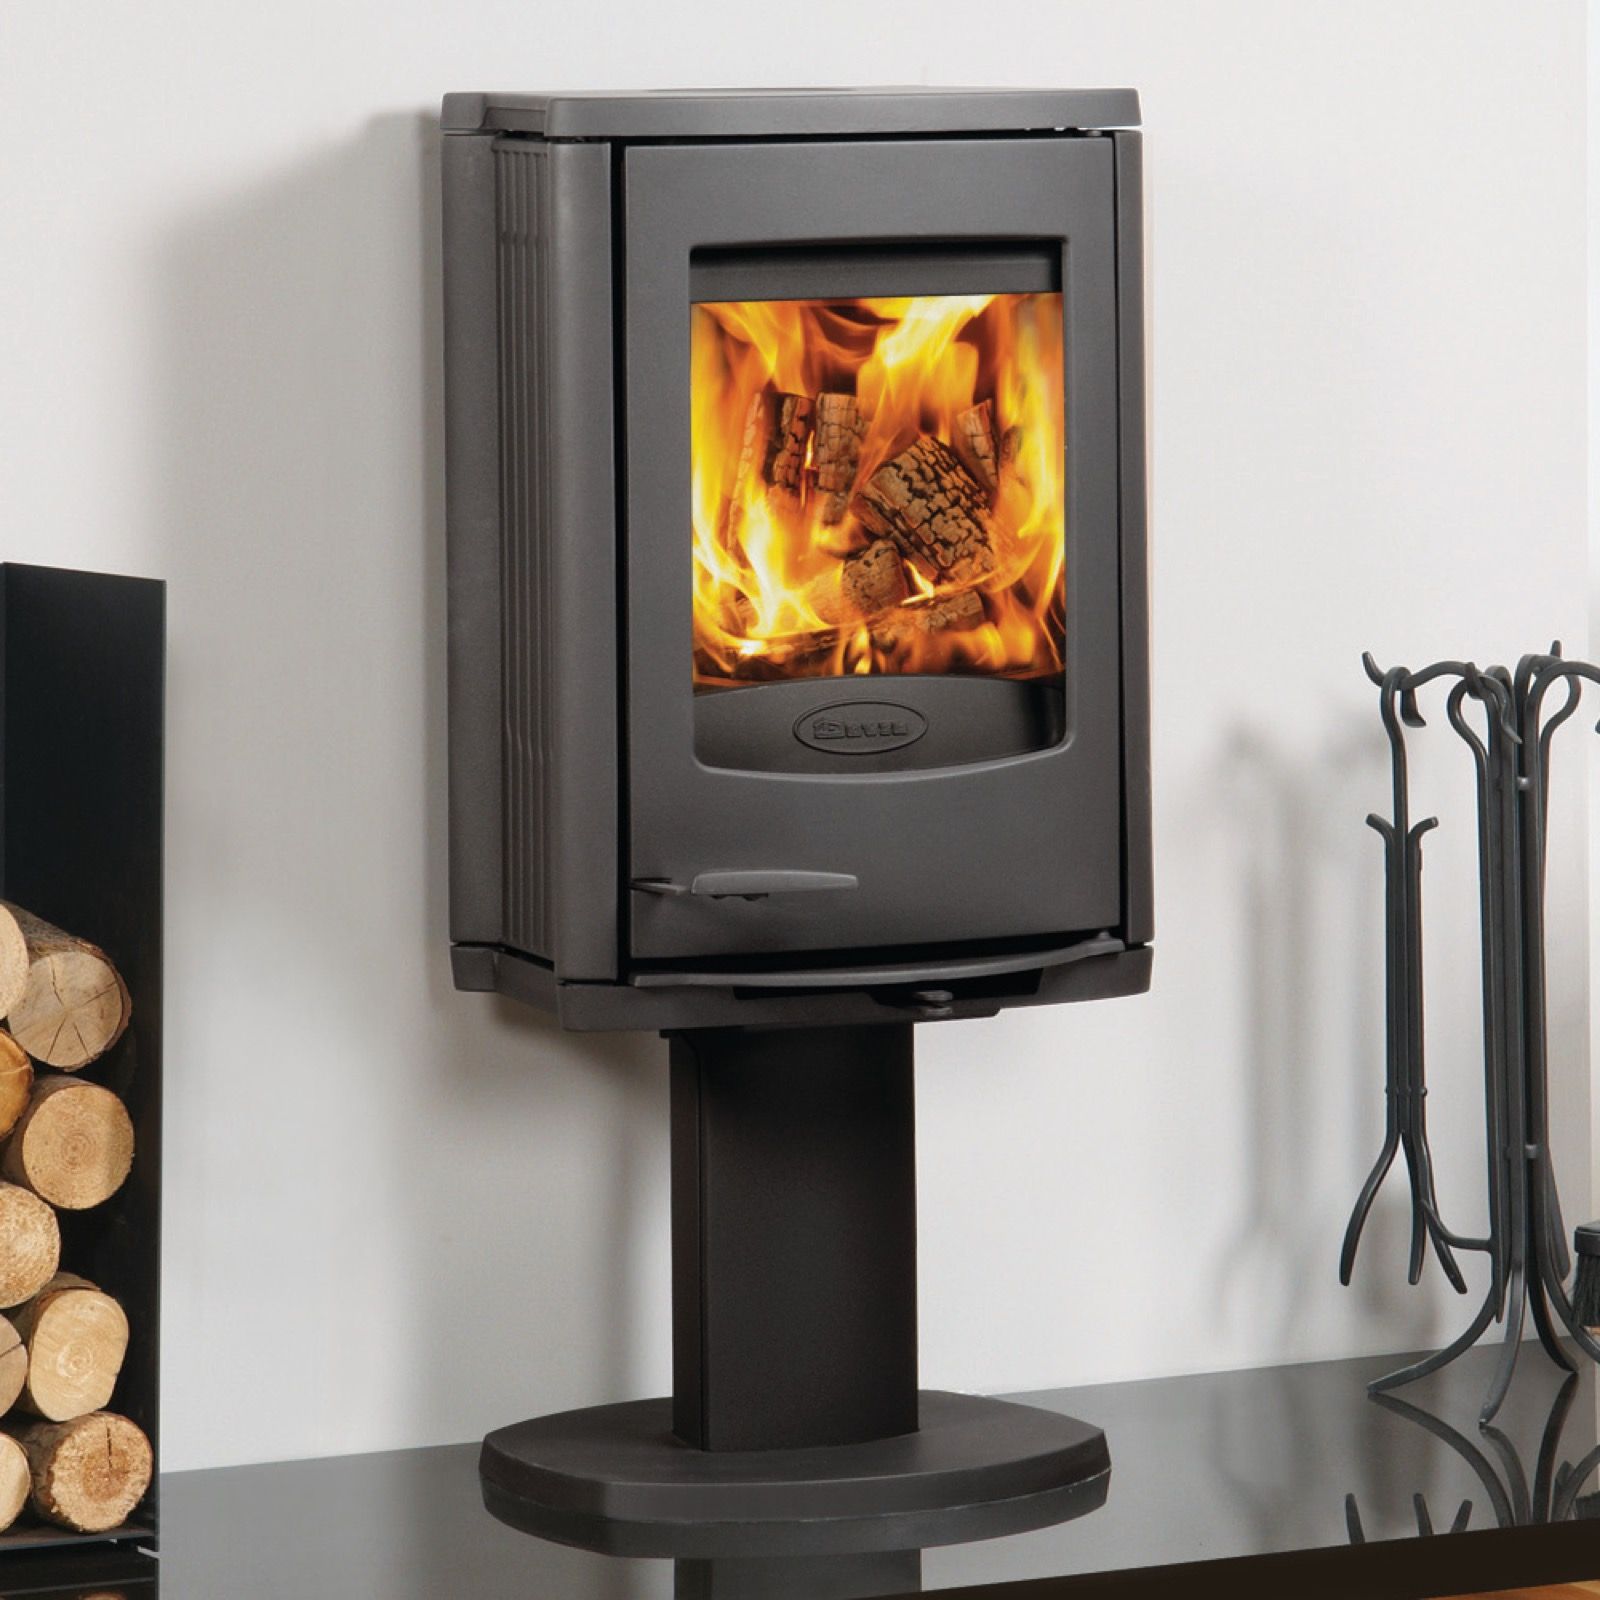 Dovre Astroline 2cb Wood Burning Stove With Pedestal In